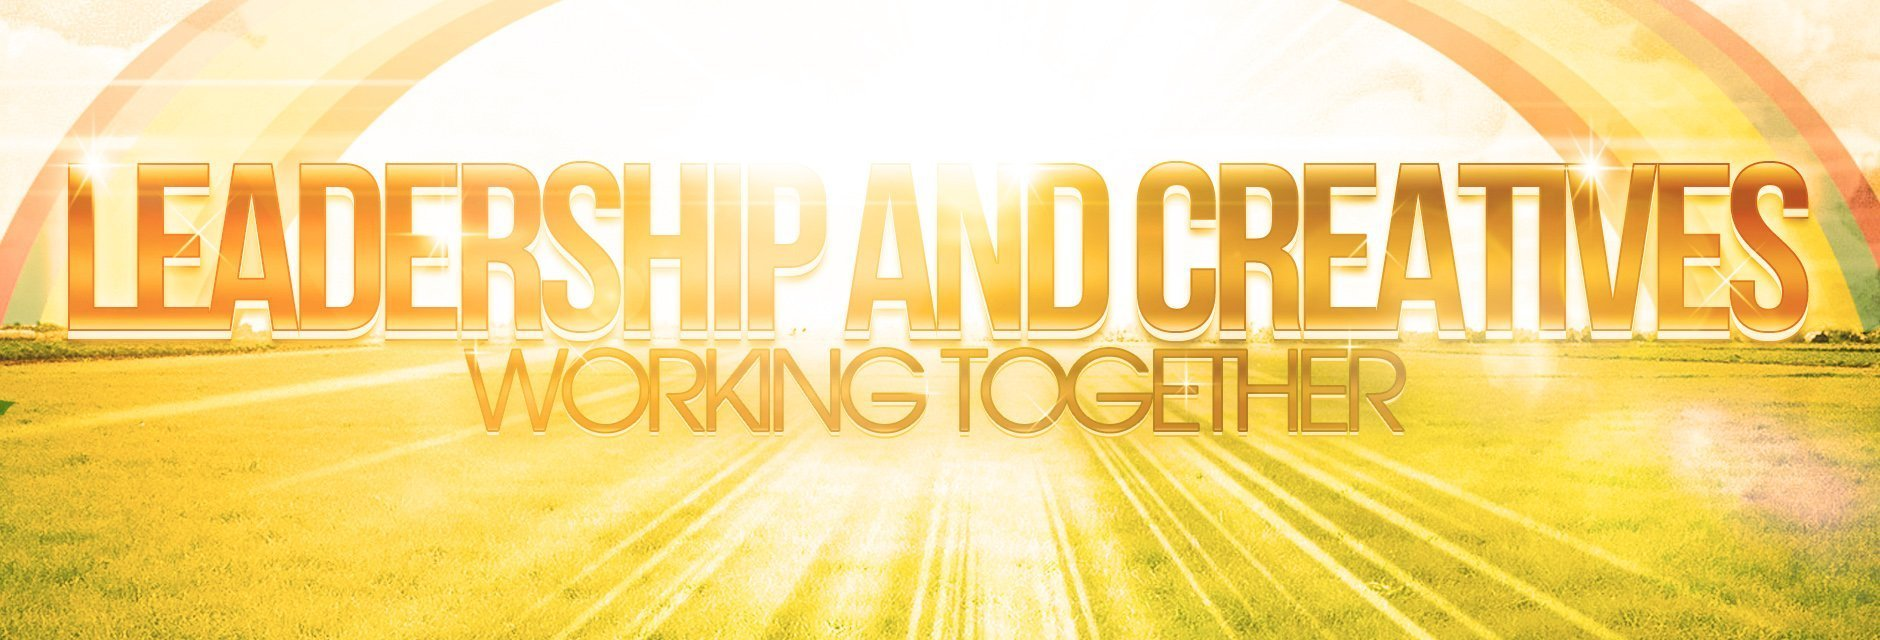 Leadership and Creatives Working Together